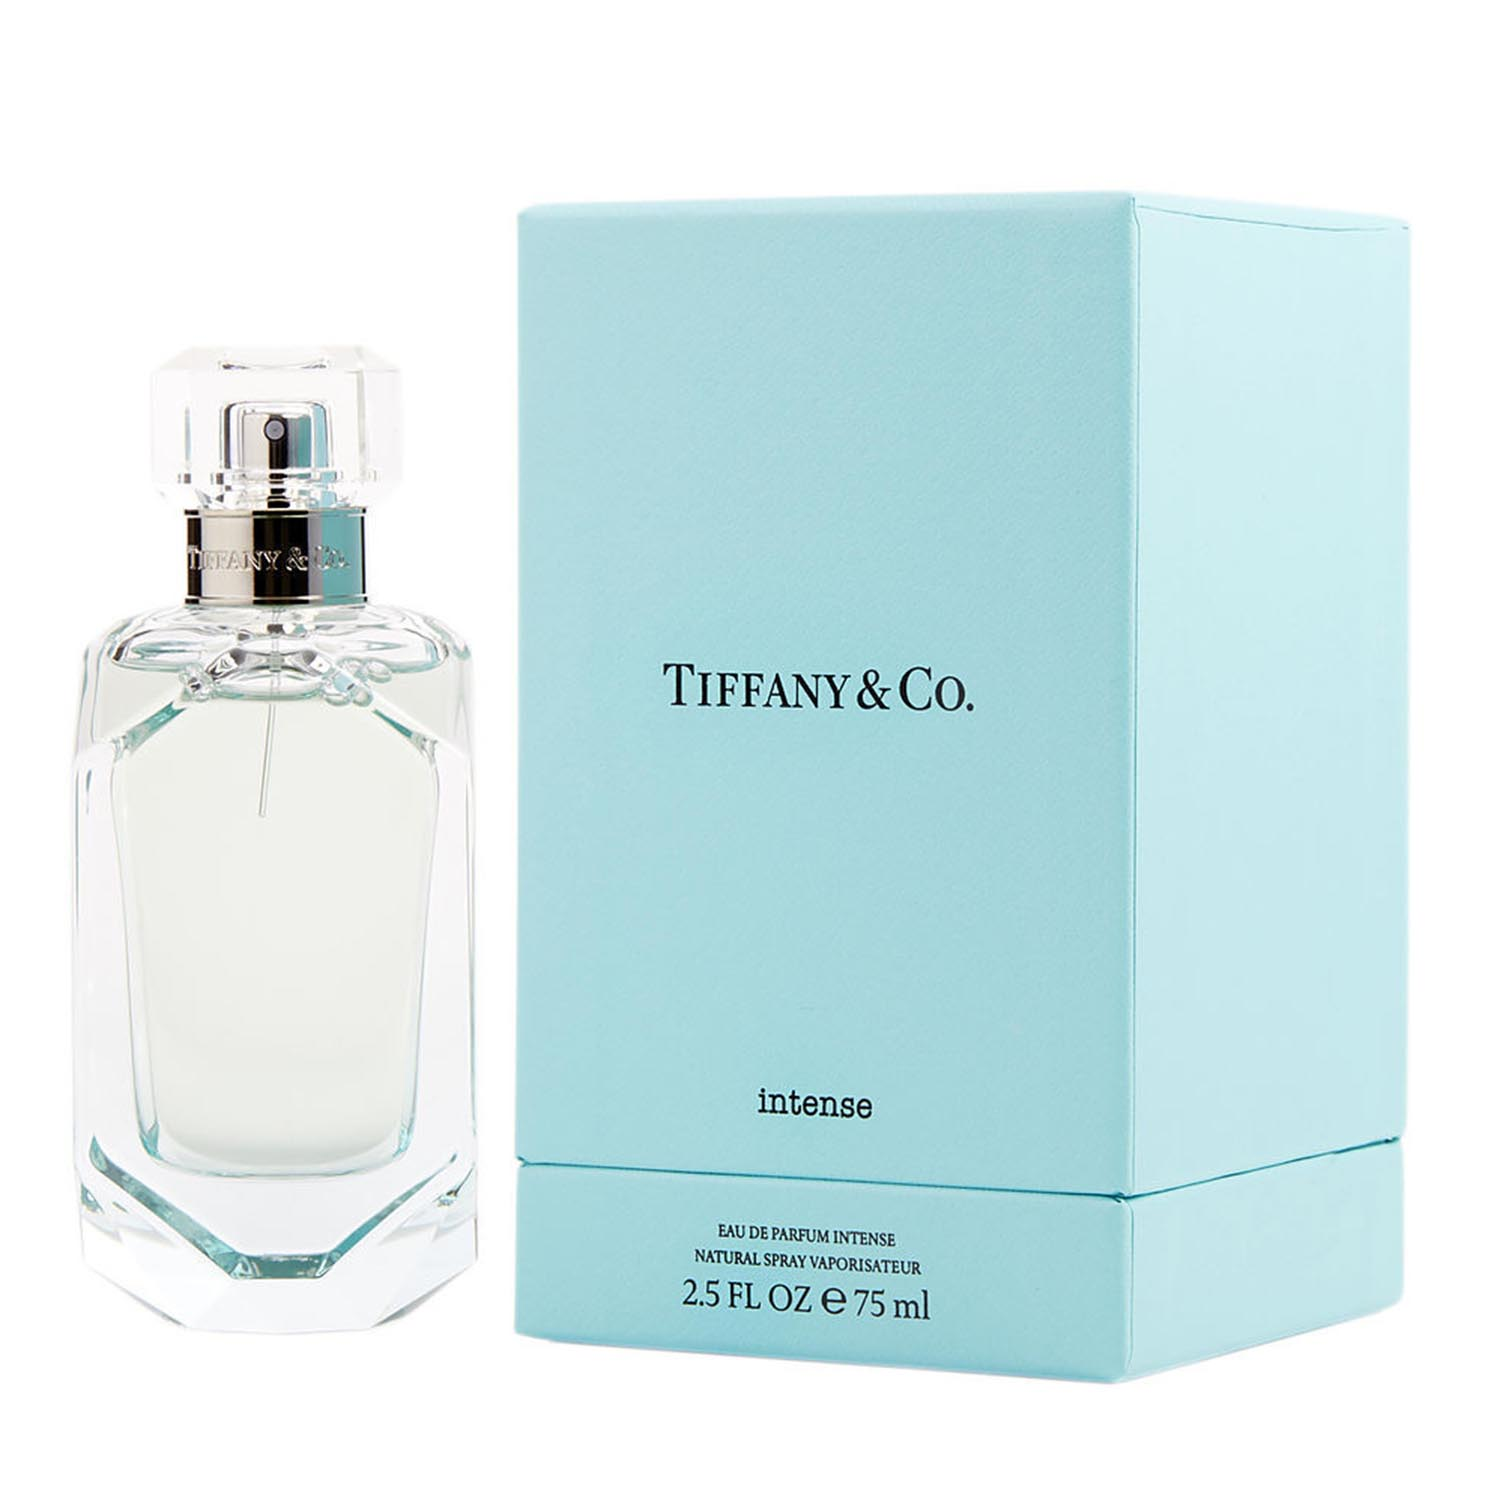 Tiffany co eau de parfum intense 75ml vaporizador